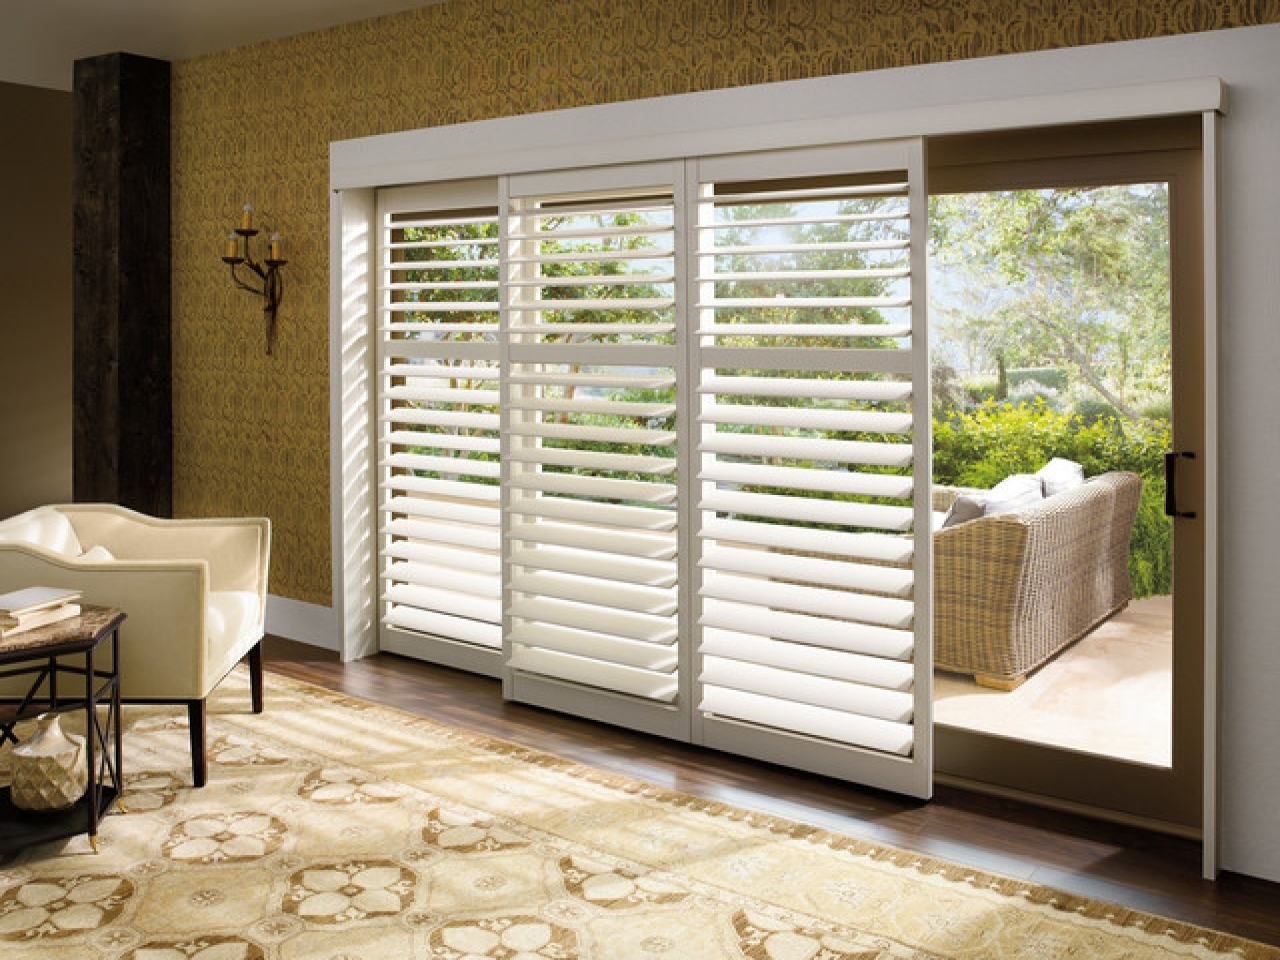 Window Valances For Sliding Glass Doorswindow treatments sliding glass doors easy sliding door hardware